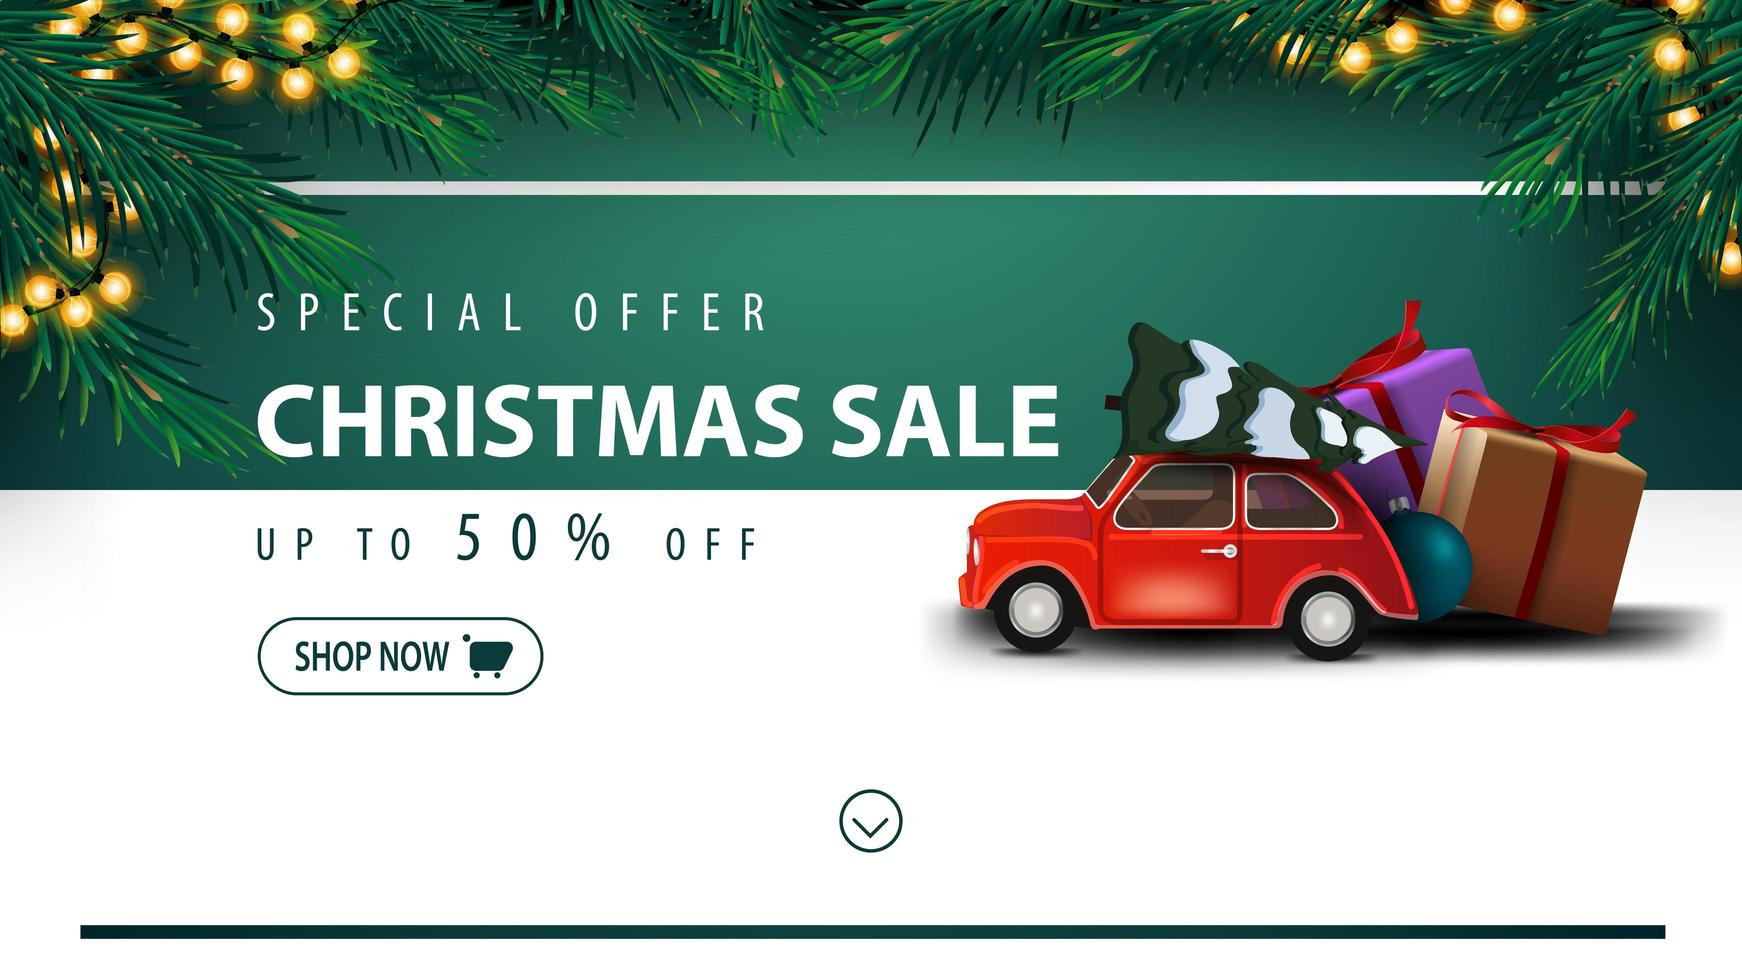 Special offer, Christmas sale, up to 50 off, white and green discount banner with button, frame of Christmas tree, garland, horizontal stripe and red vintage car carrying Christmas tree vector